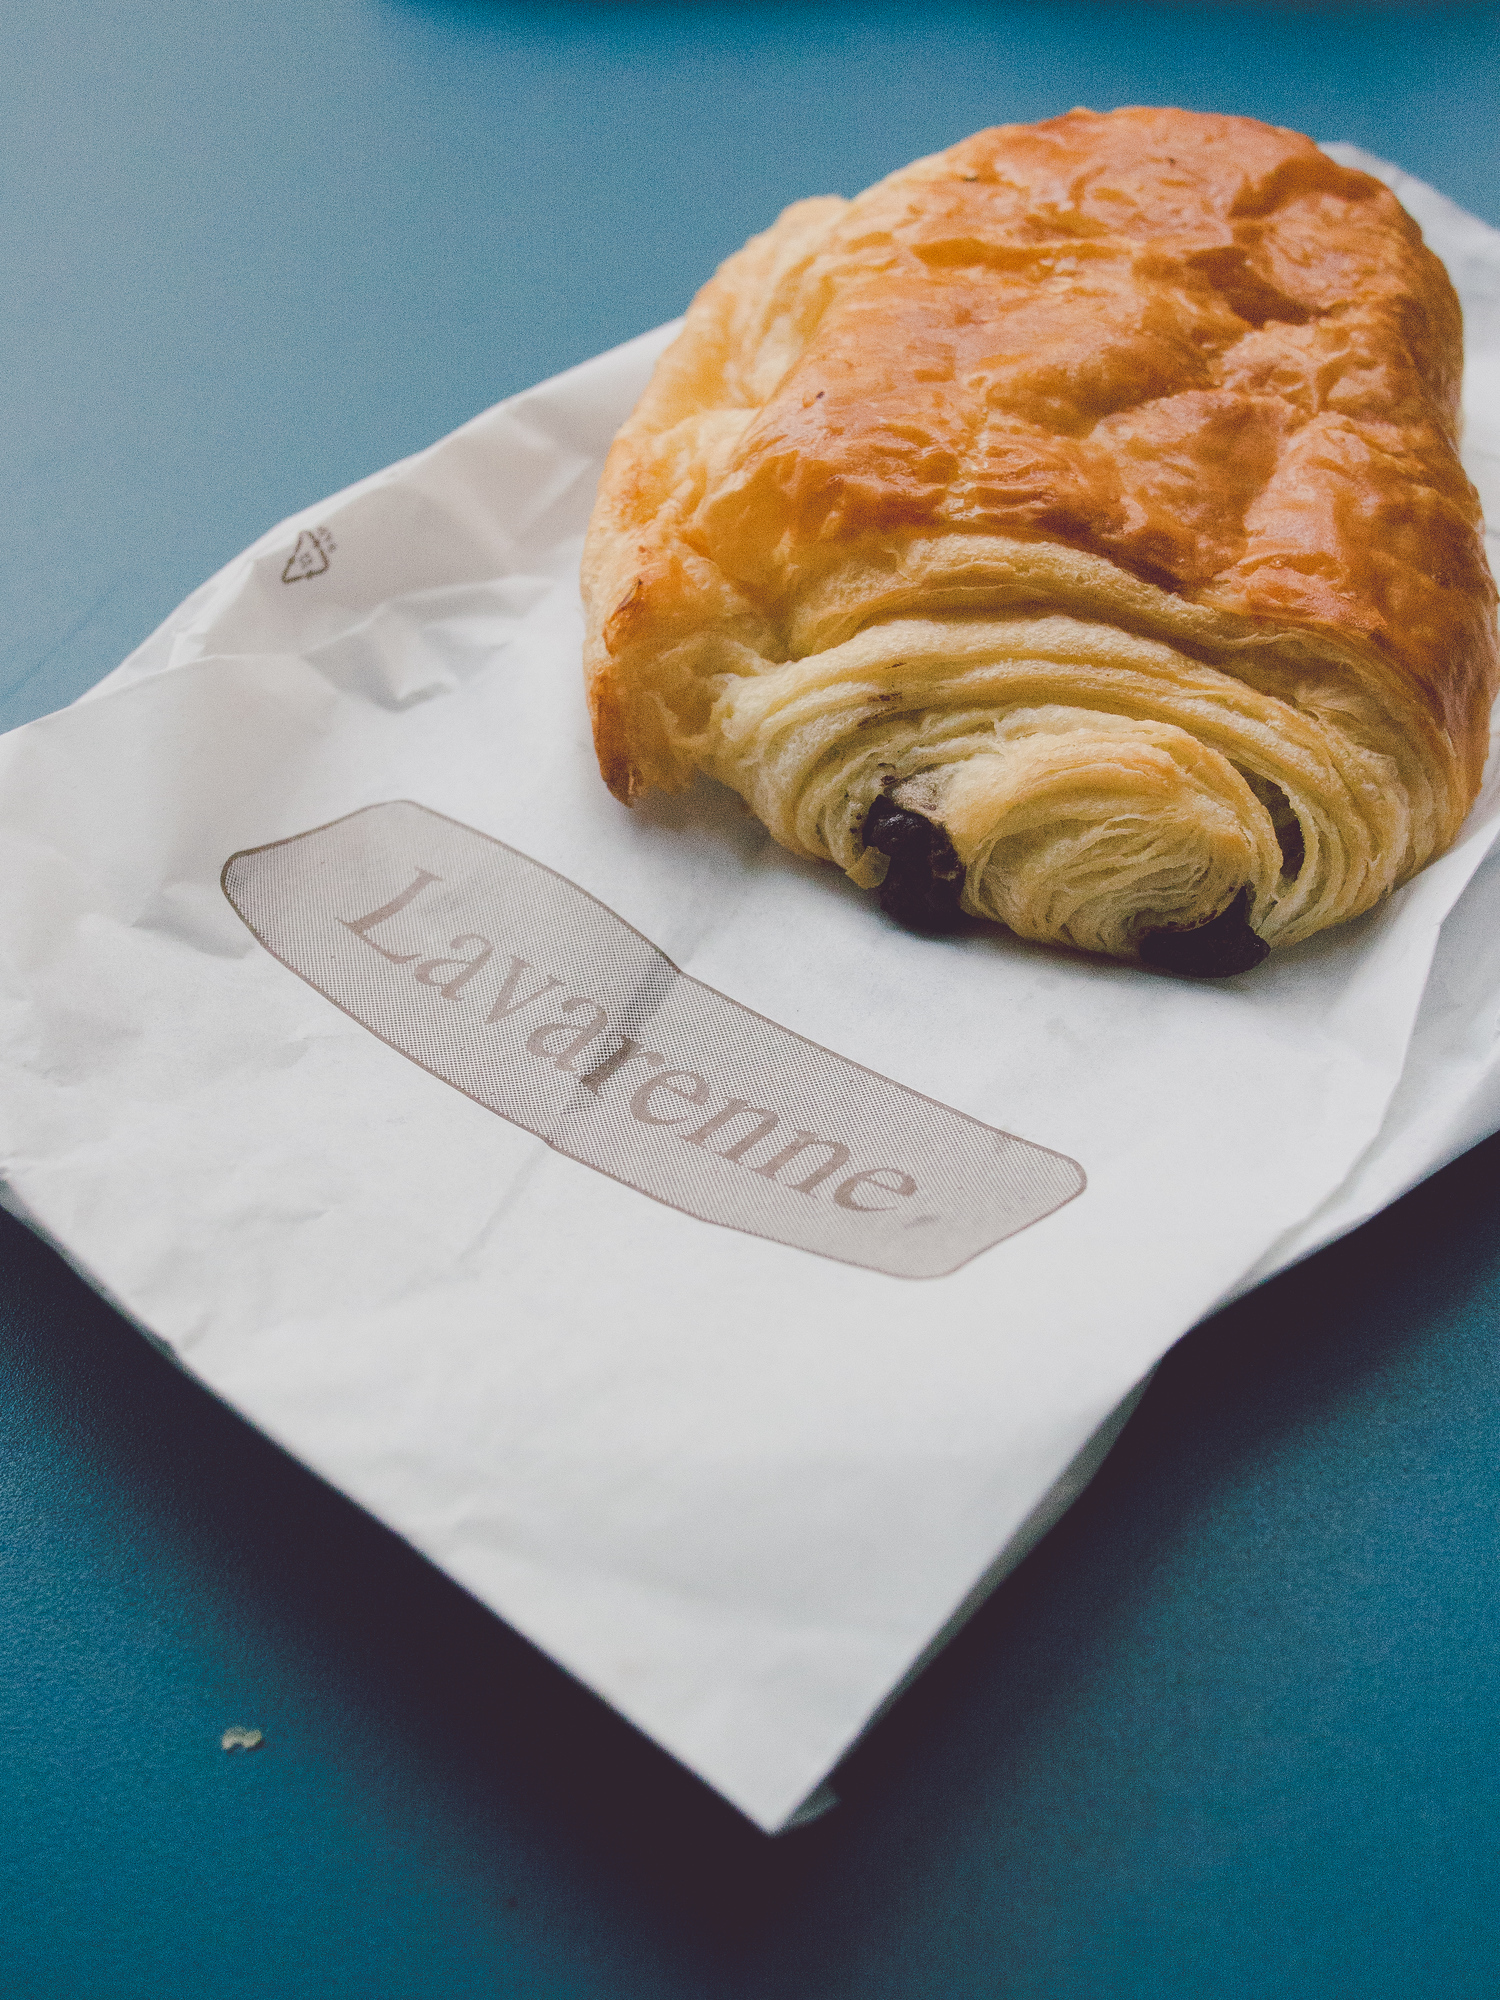 Lavarenne is one of the best bakeries in Aix en Provence, discover what other patisseries in Aix en Provence you must visit!